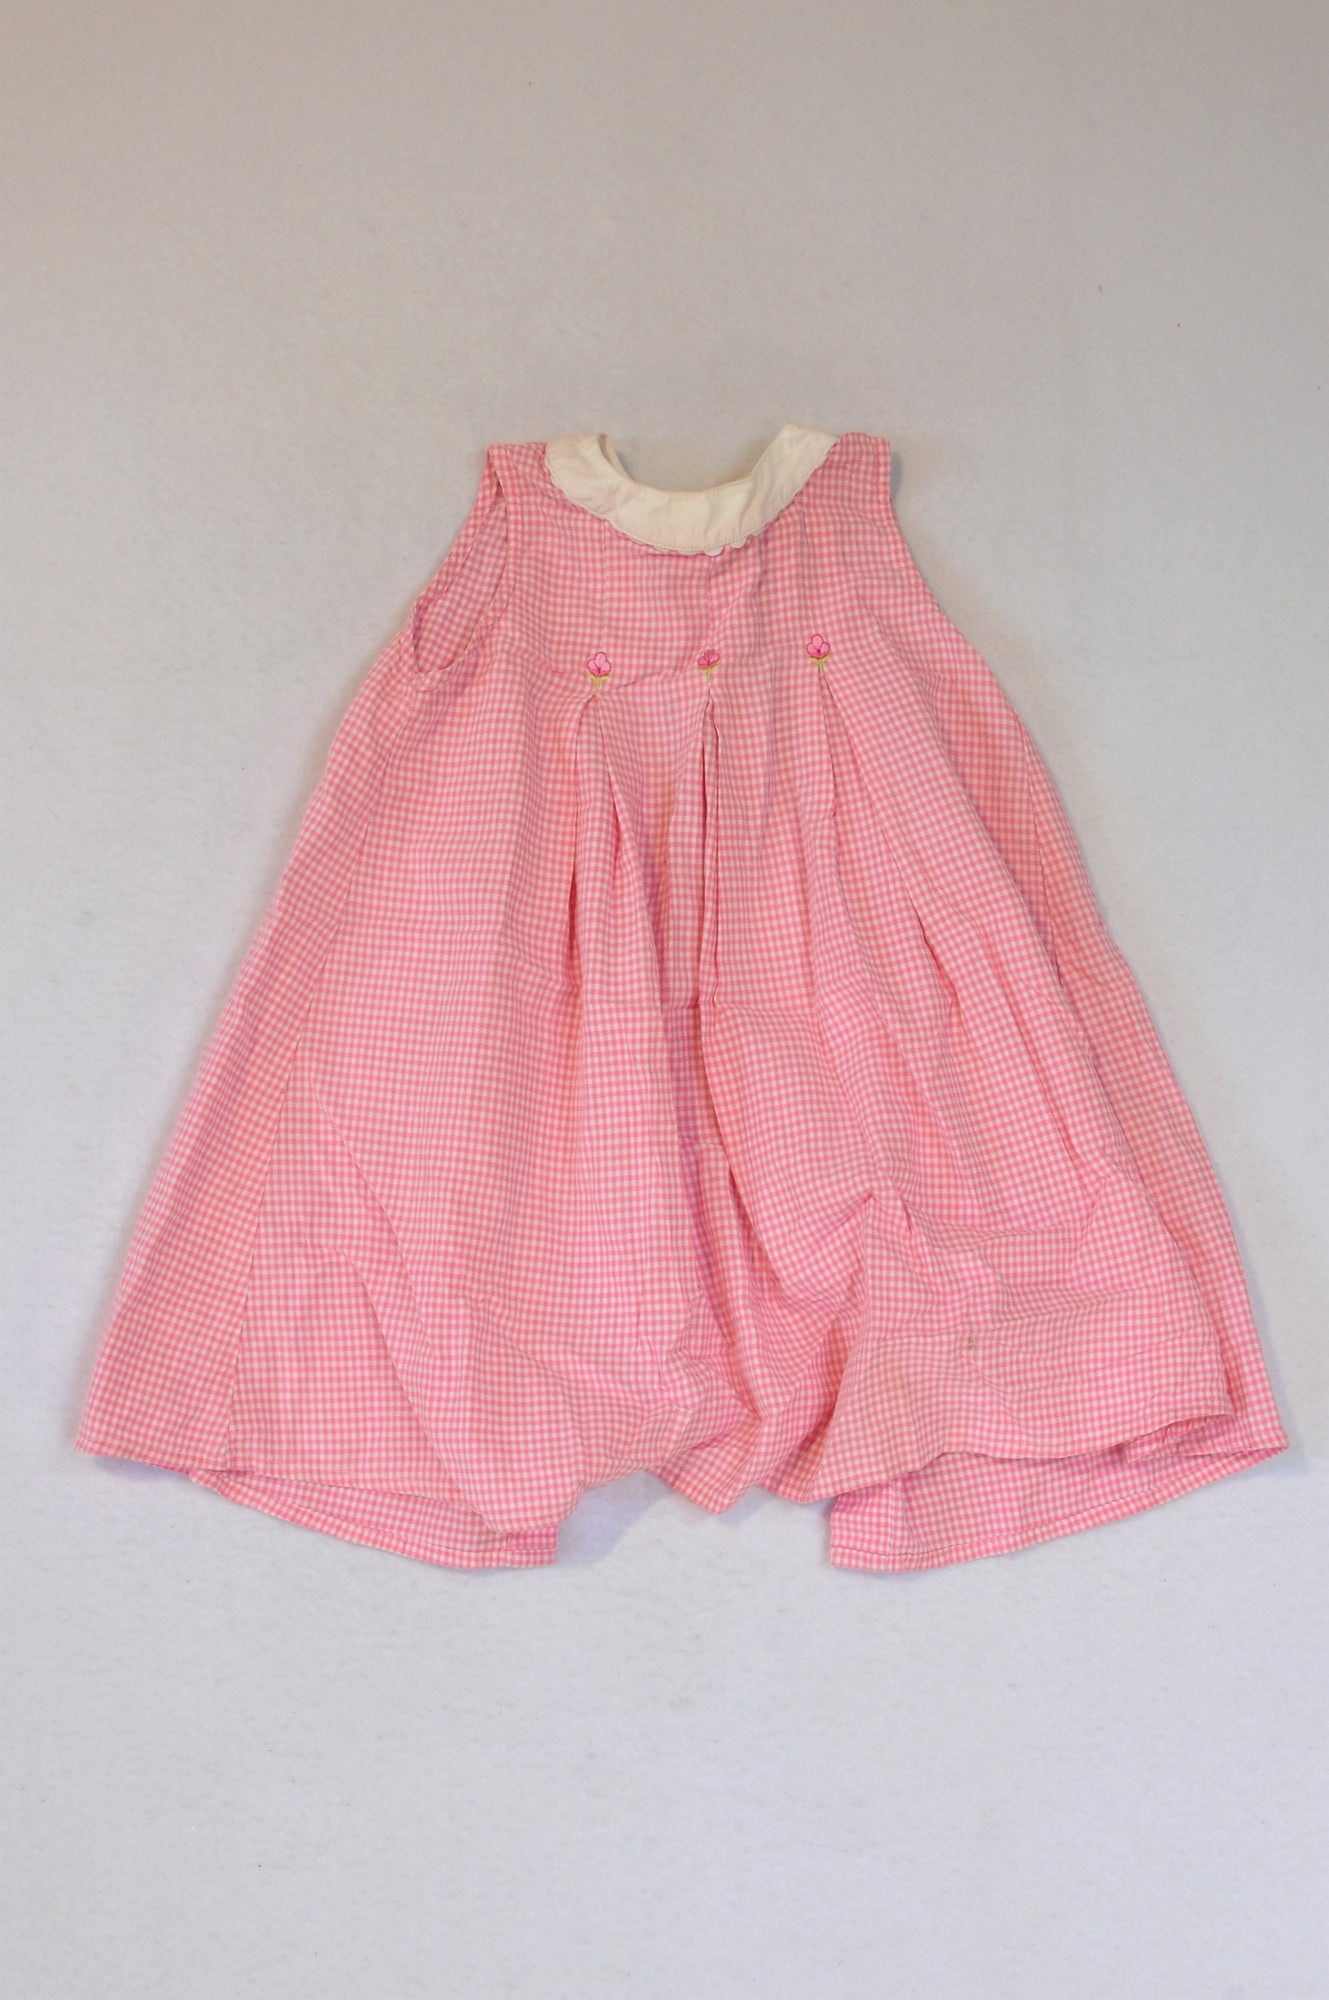 Unbranded White & Pink Lined Smock Dress Girls 0-3 months